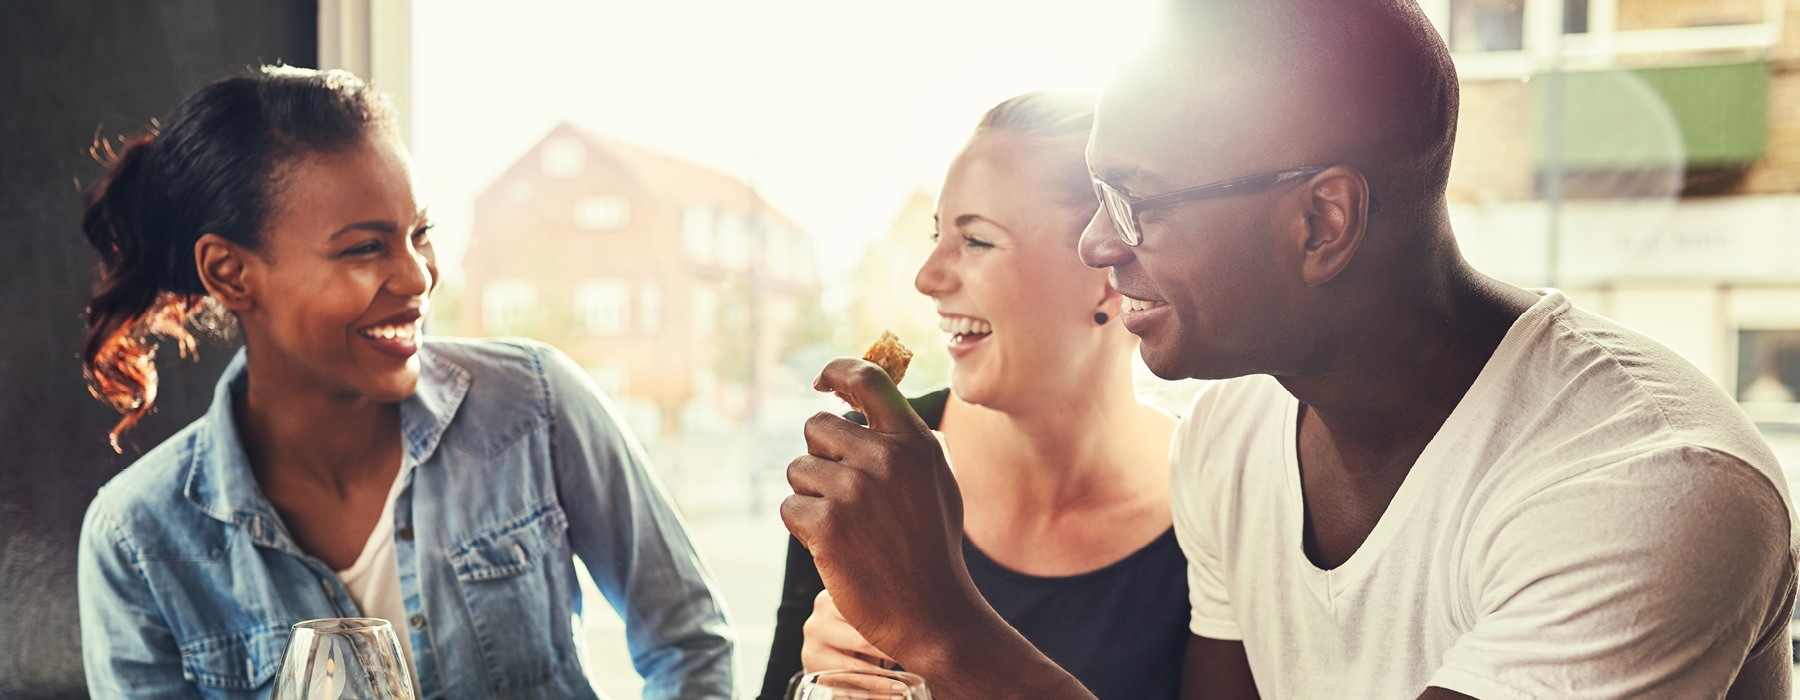 young friends laugh and smile with food and drinks at restaurant